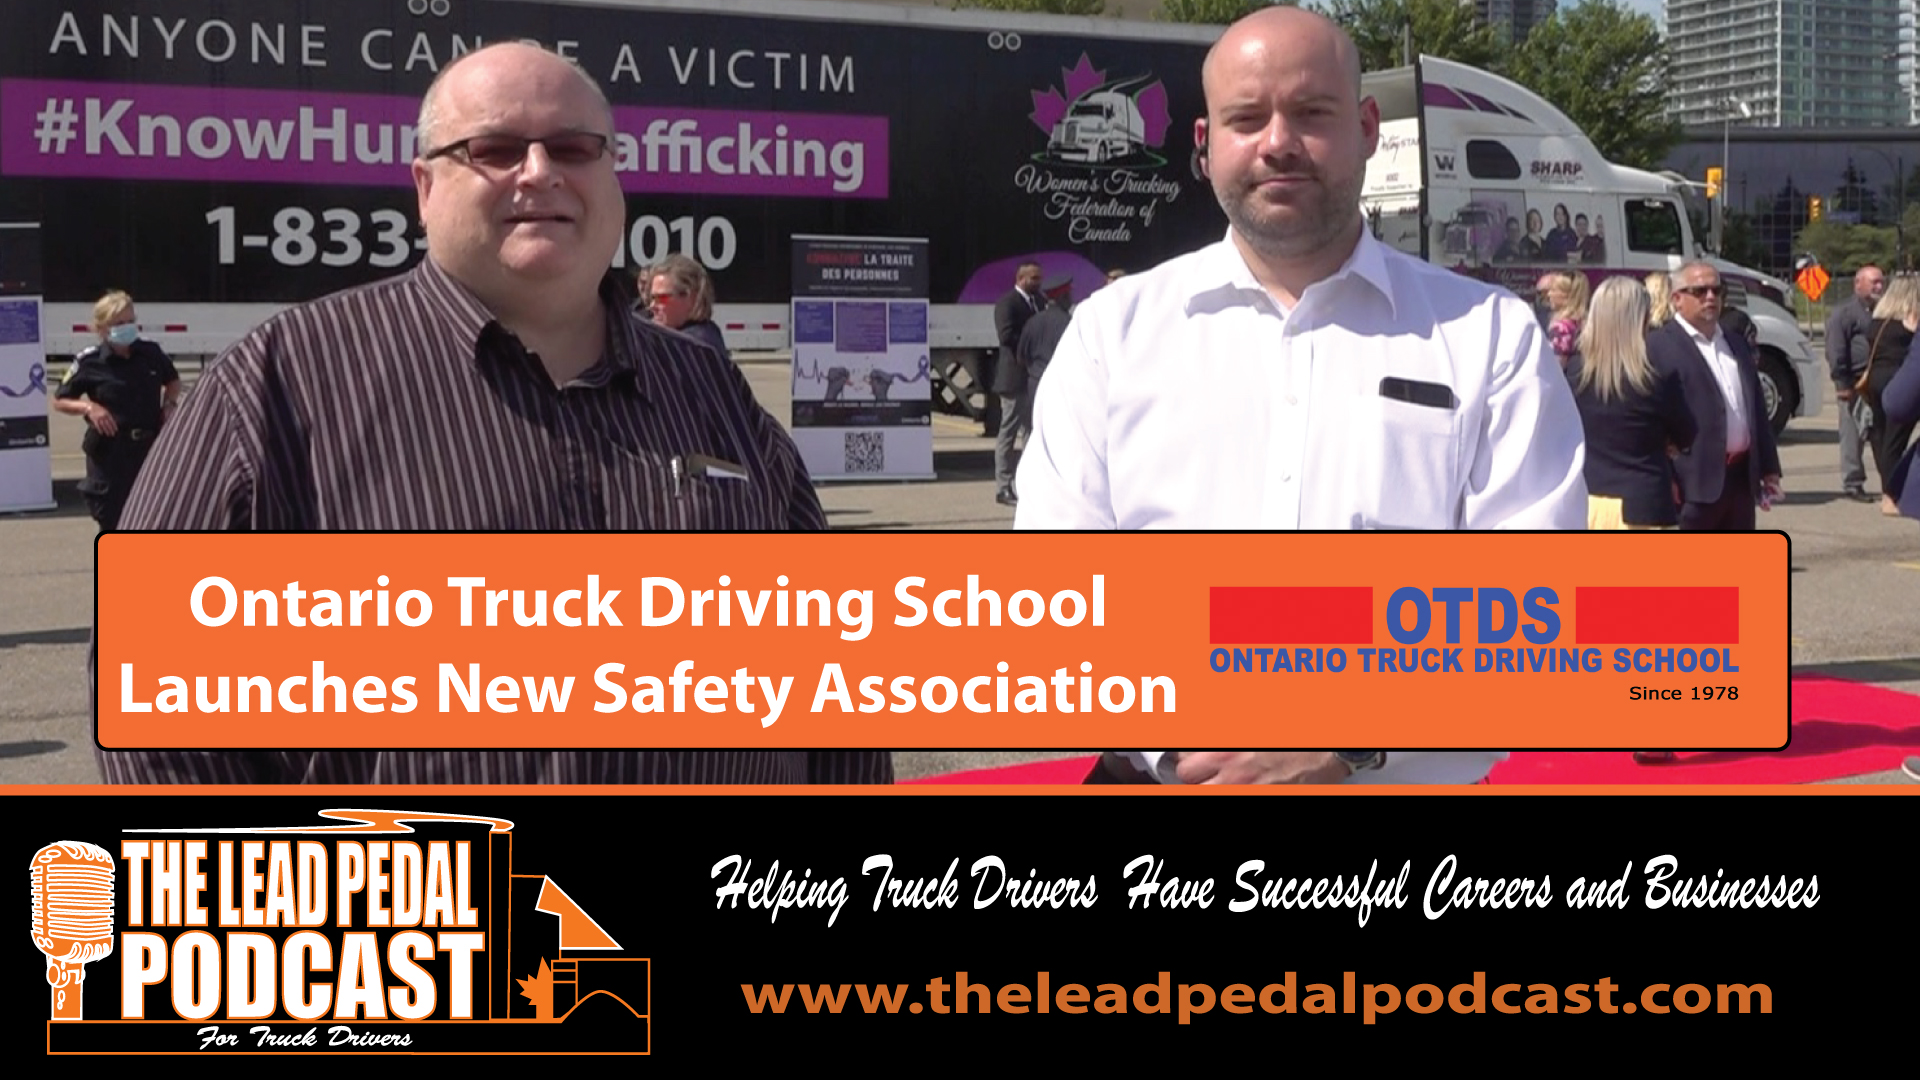 Ontario Truck Driving School Launches New Safety Association